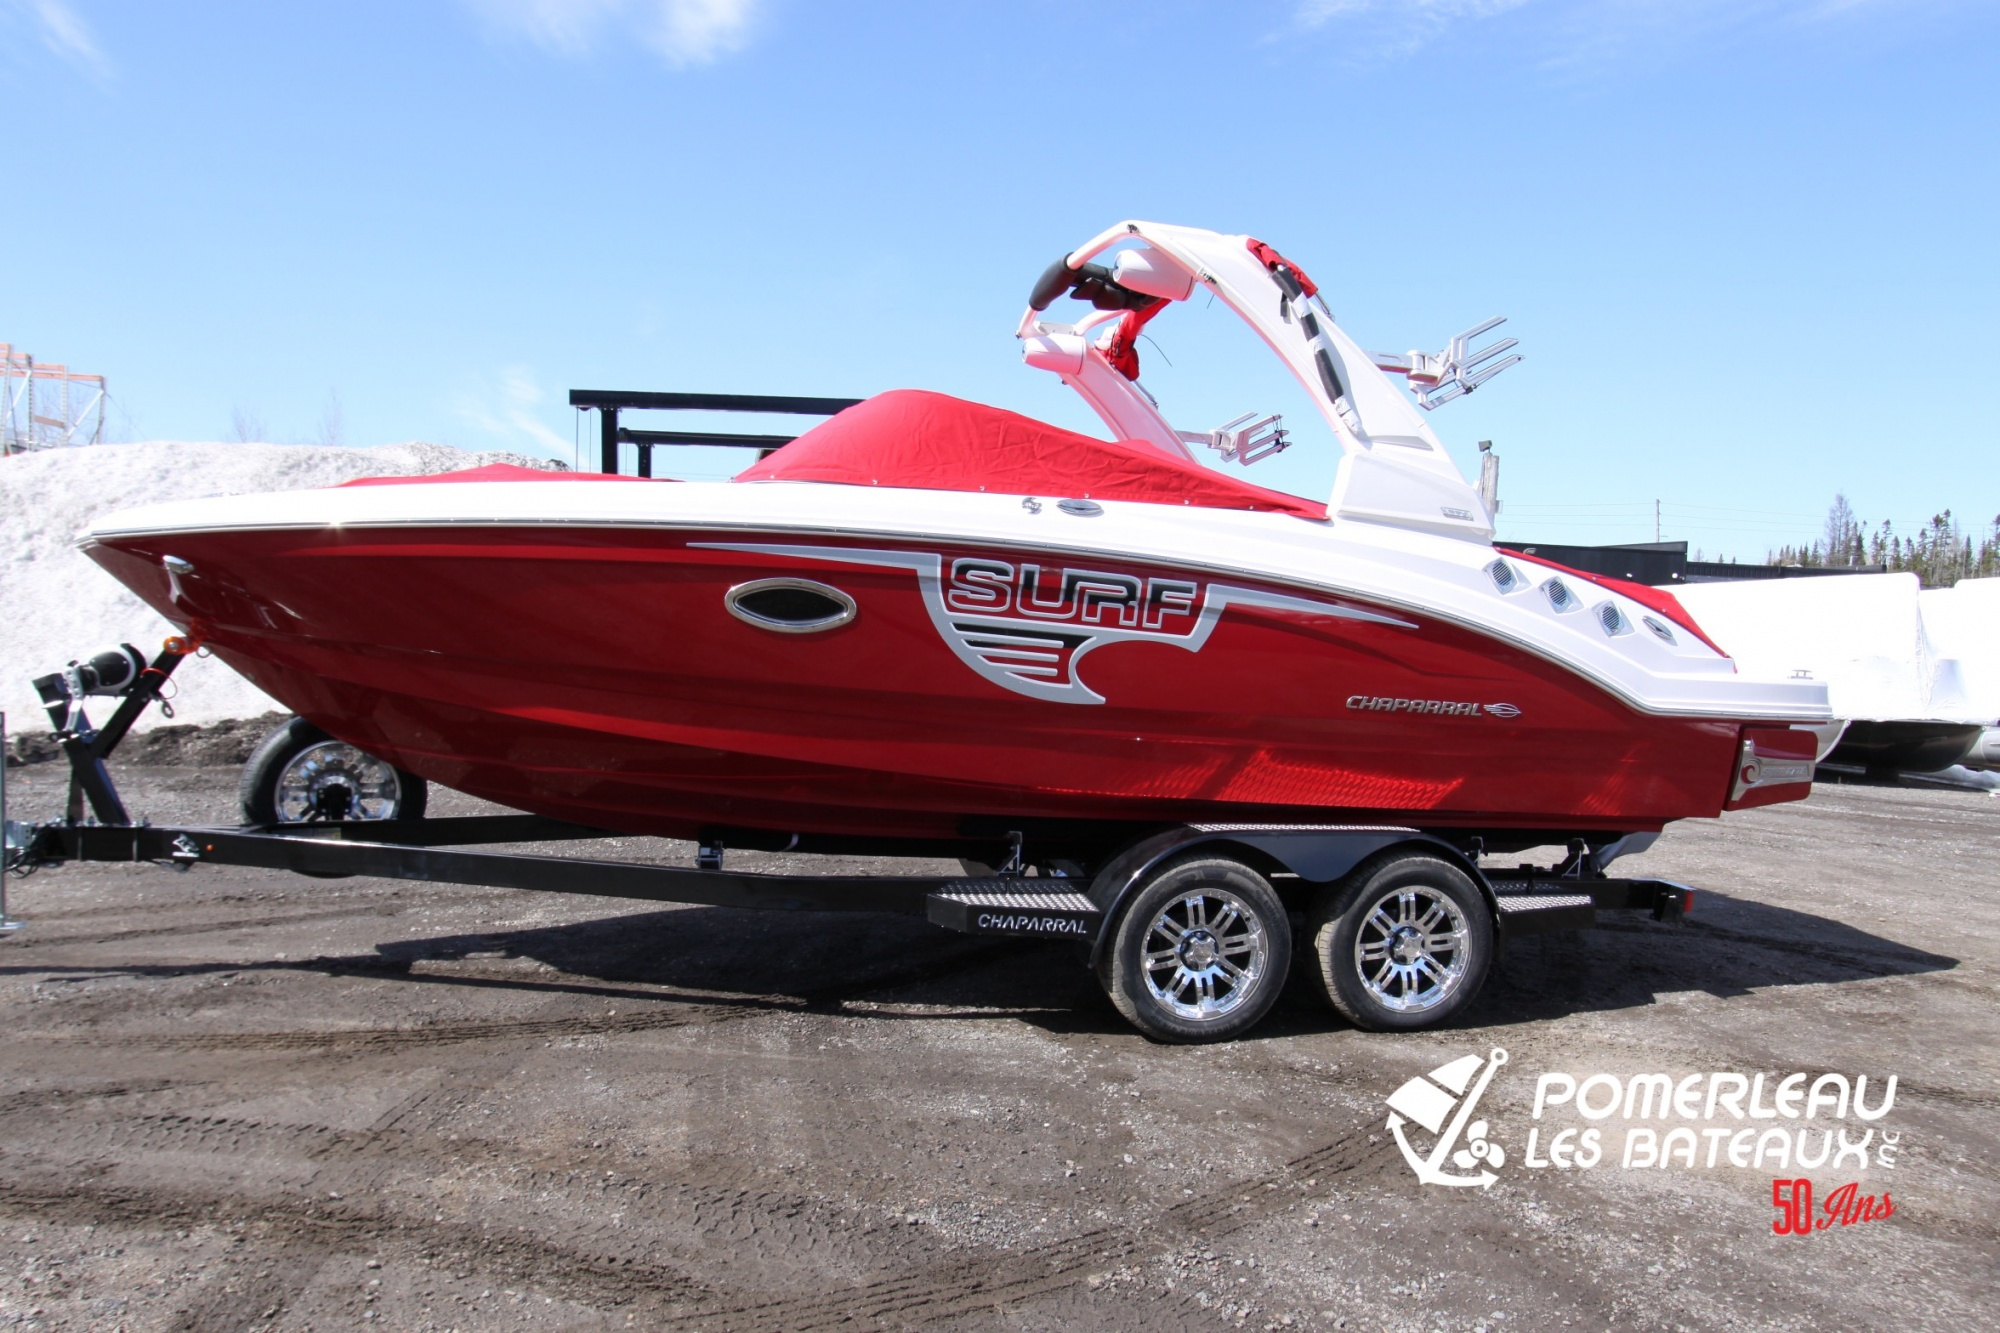 Chaparral 24 Surf - IMG_5042